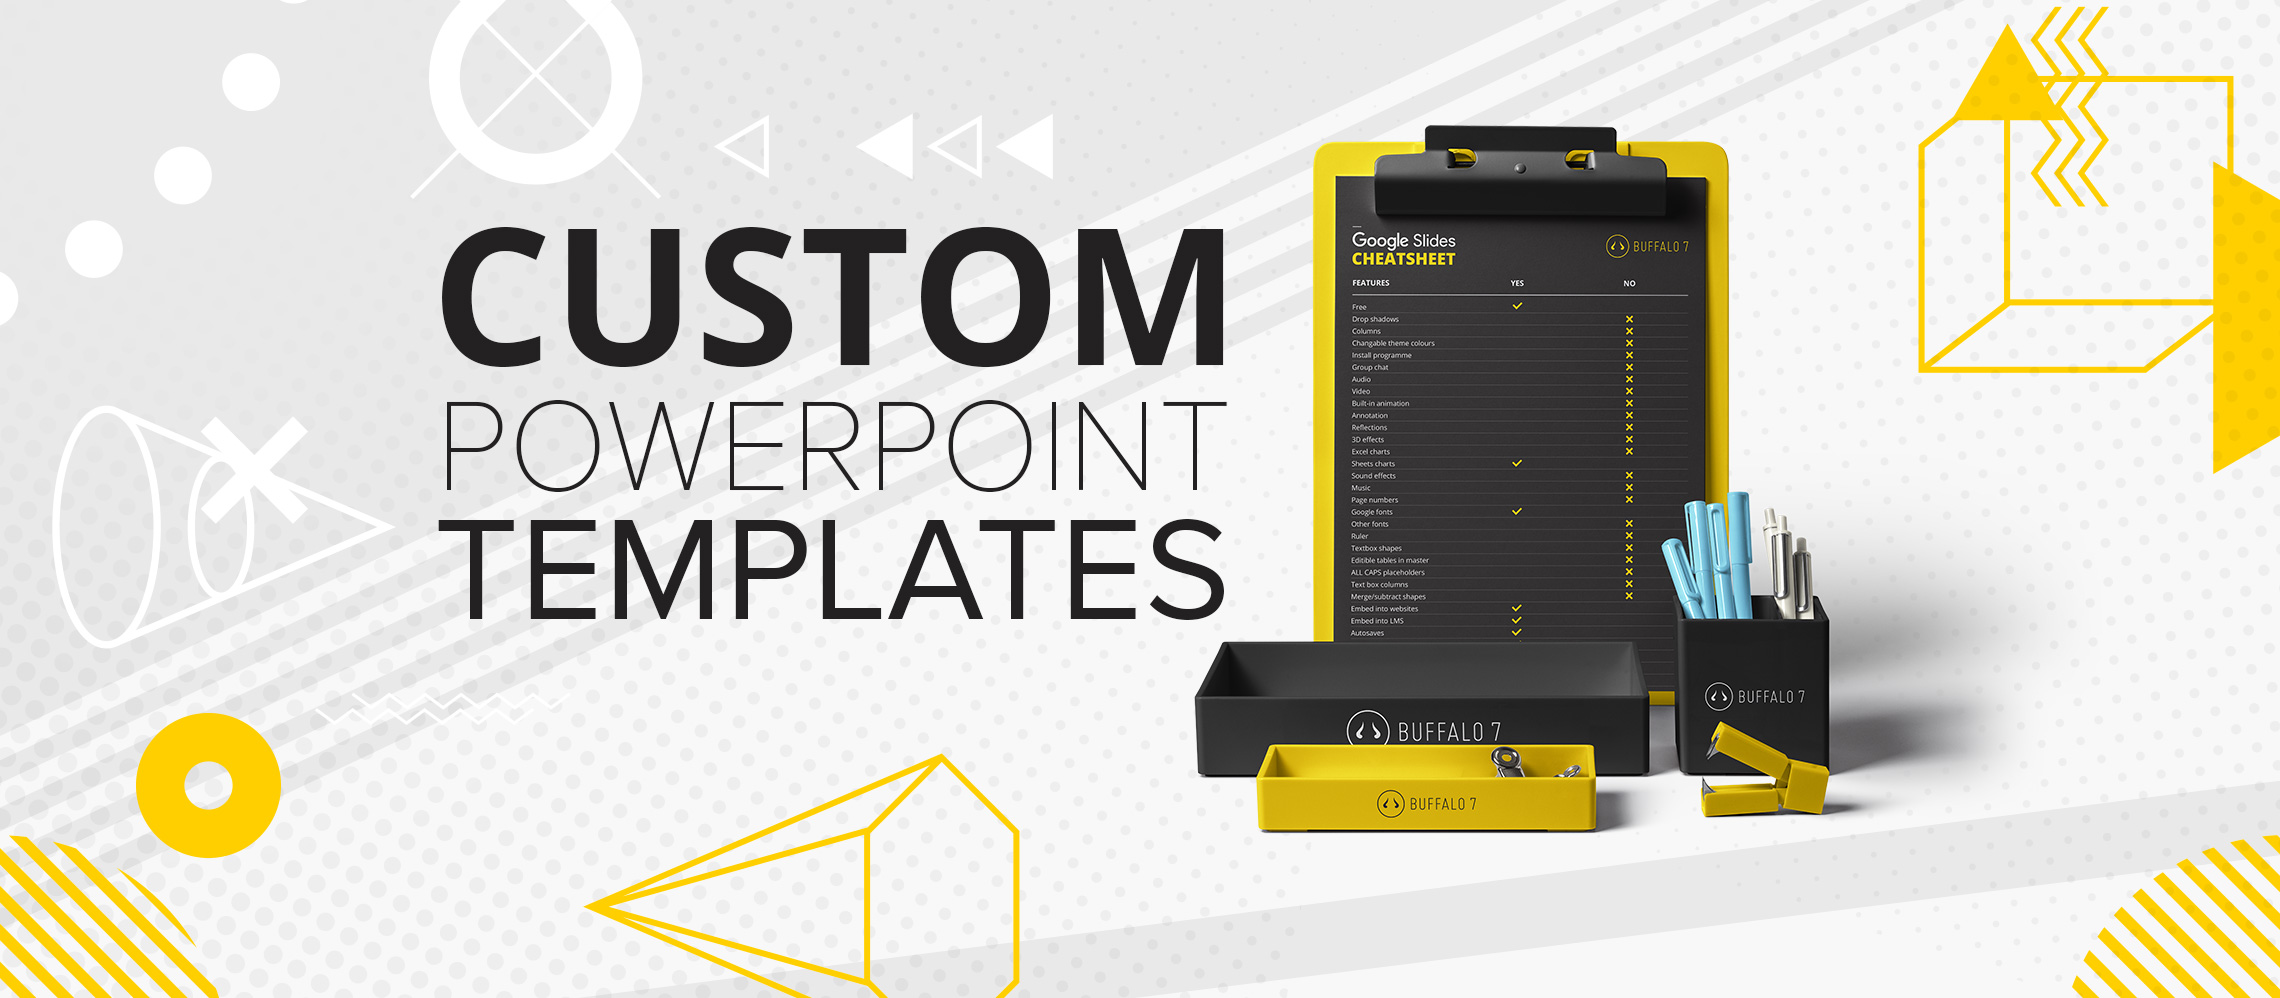 How To Create A Custom Powerpoint Template